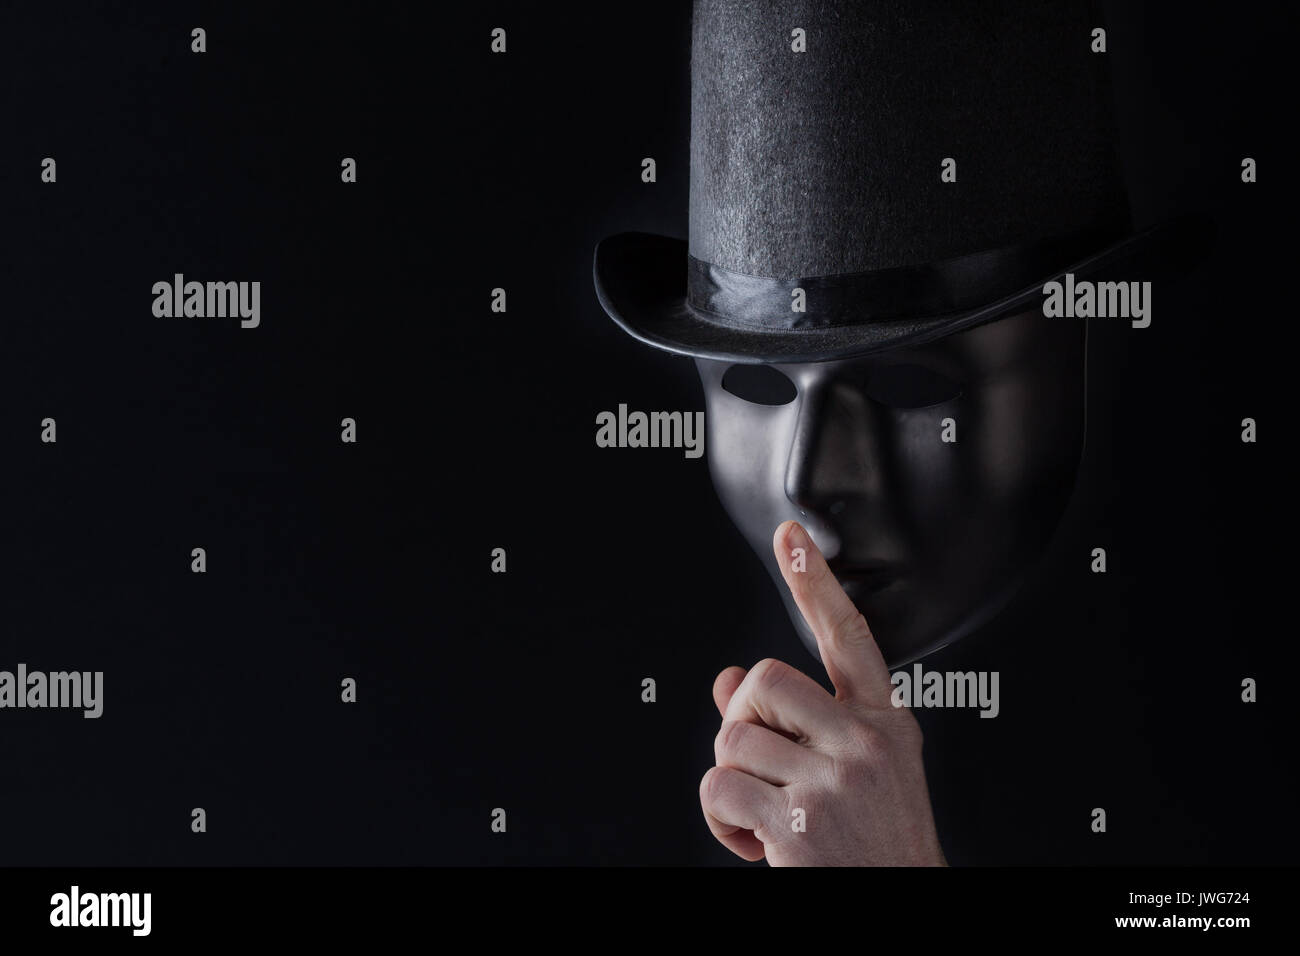 Male finger showing shh sign on black mask wearing black top hat on black background with copy space. Freedom of speech and silence concept - Stock Image